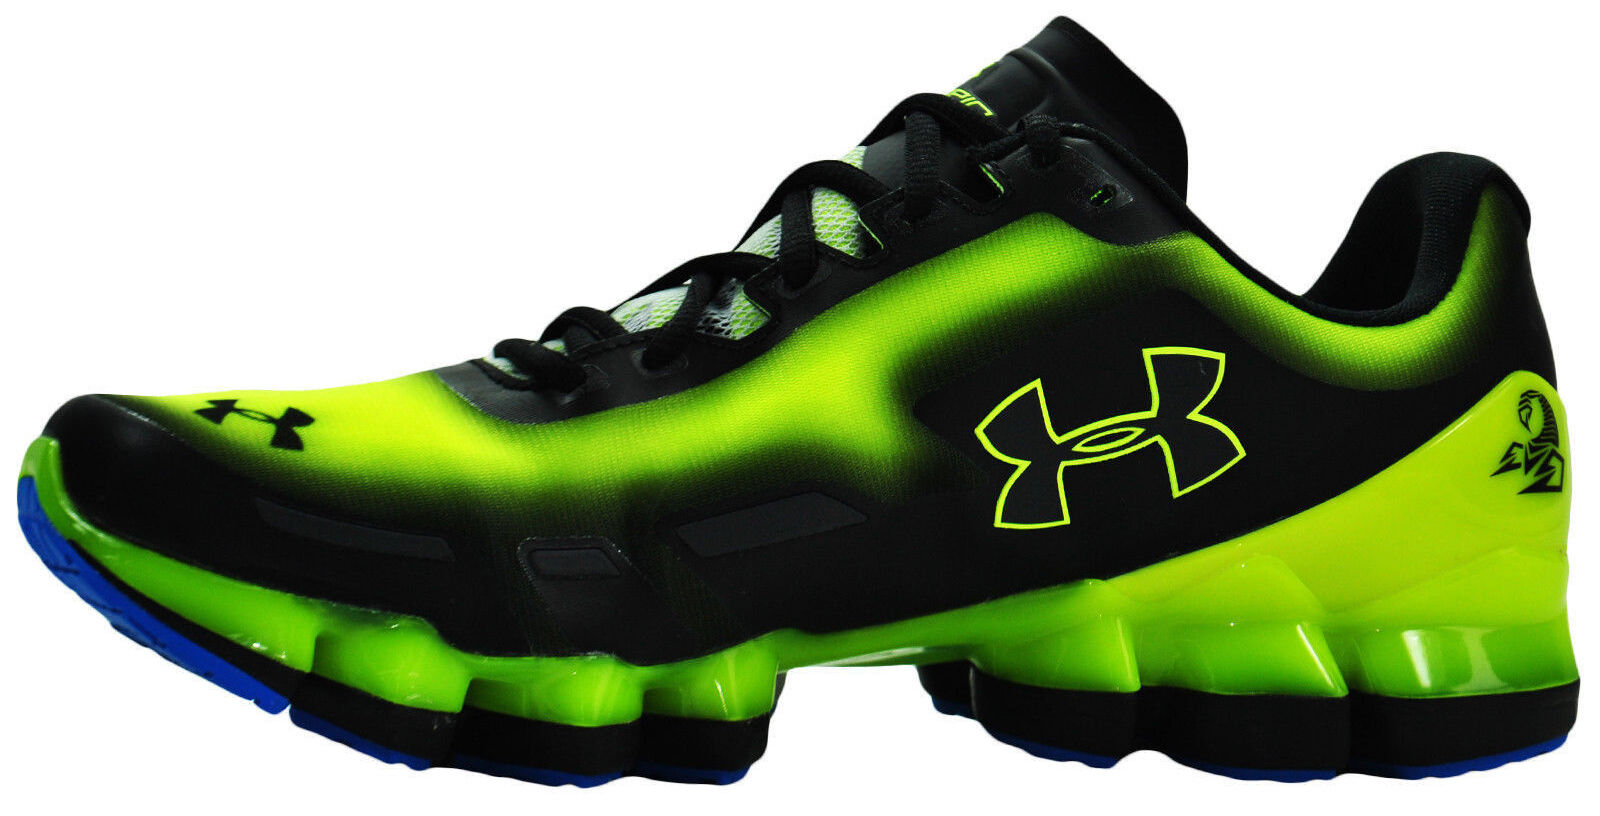 under armour shoes. scorpio running shoe under armour shoes